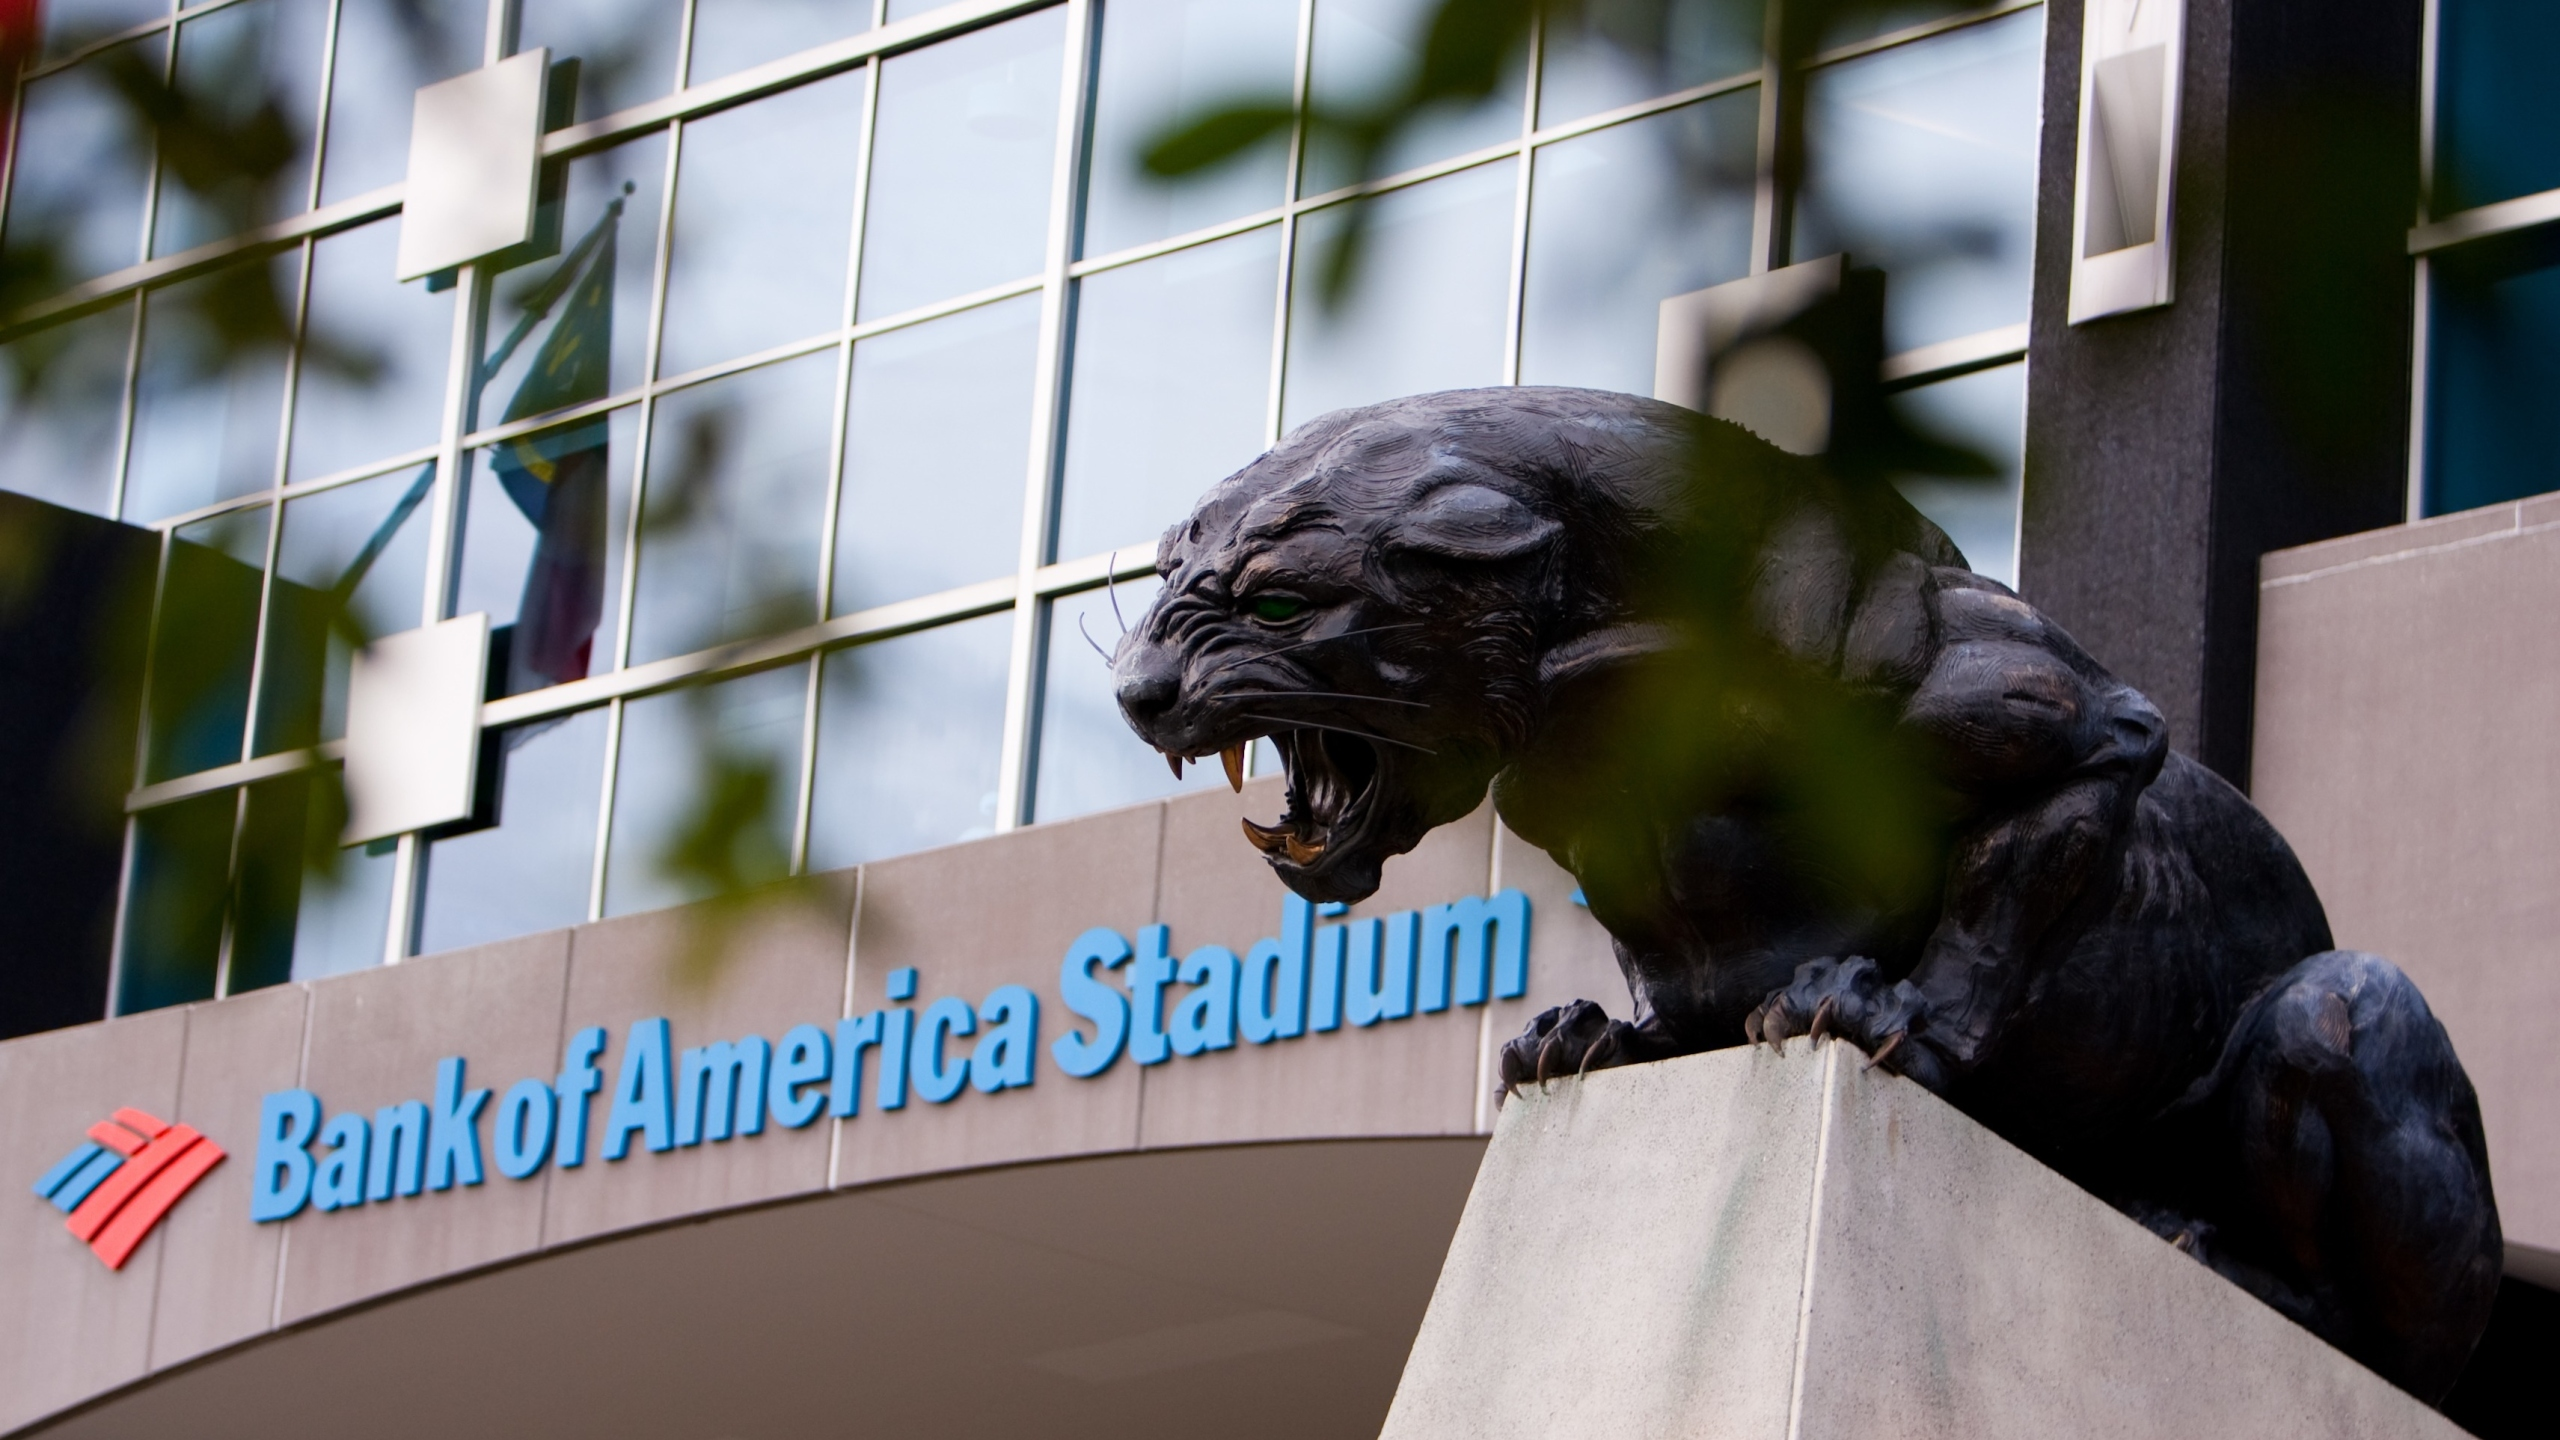 An exterior view of Bank of America Stadium in Charlotte, North Carolina. (Photo by Tim Steadman/Icon SMI/Corbis/Icon Sportswire via Getty Images)